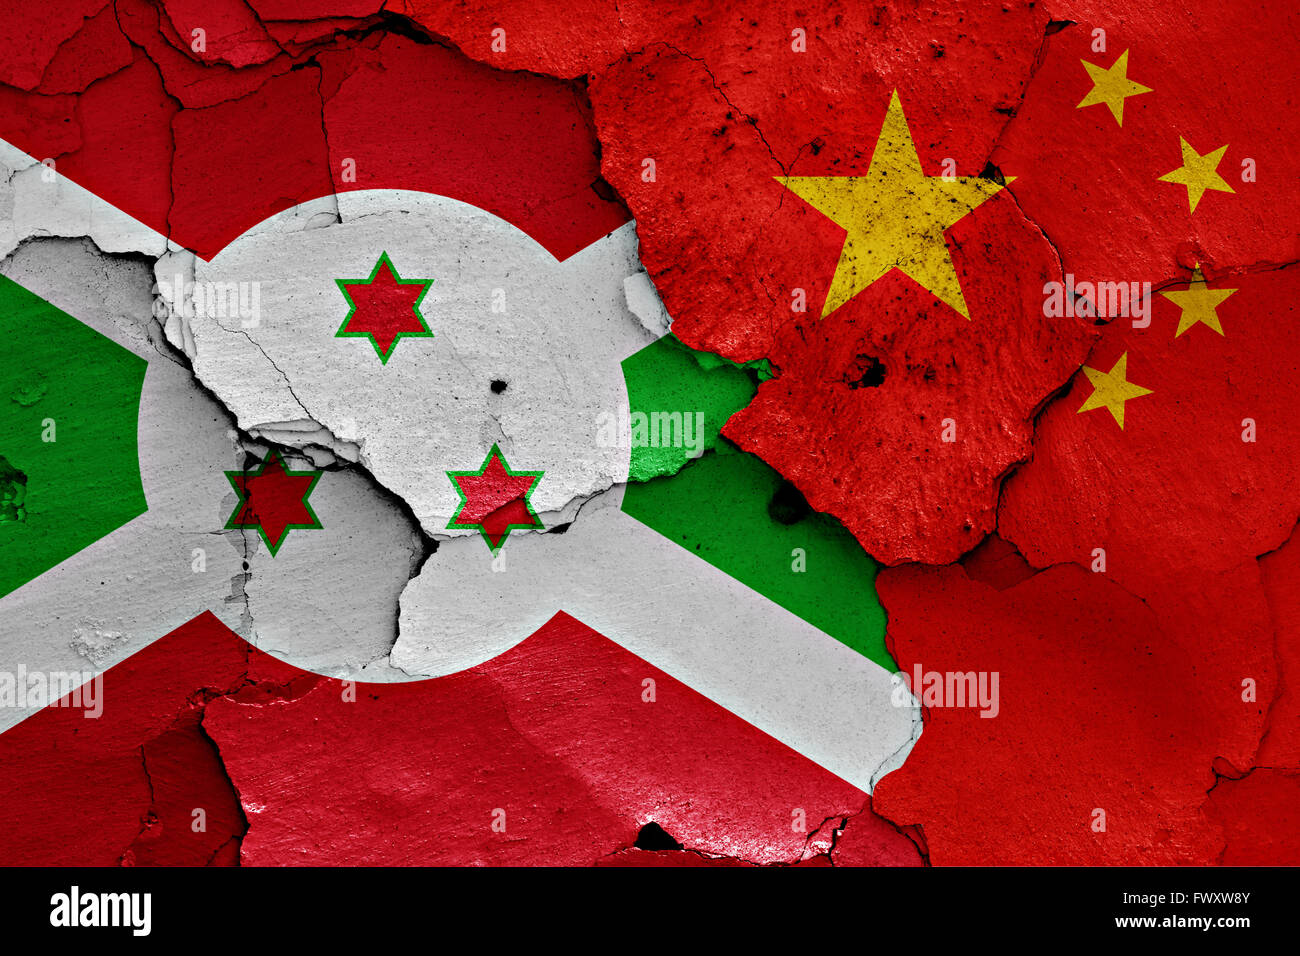 flags of Burundi and China painted on cracked wall - Stock Image